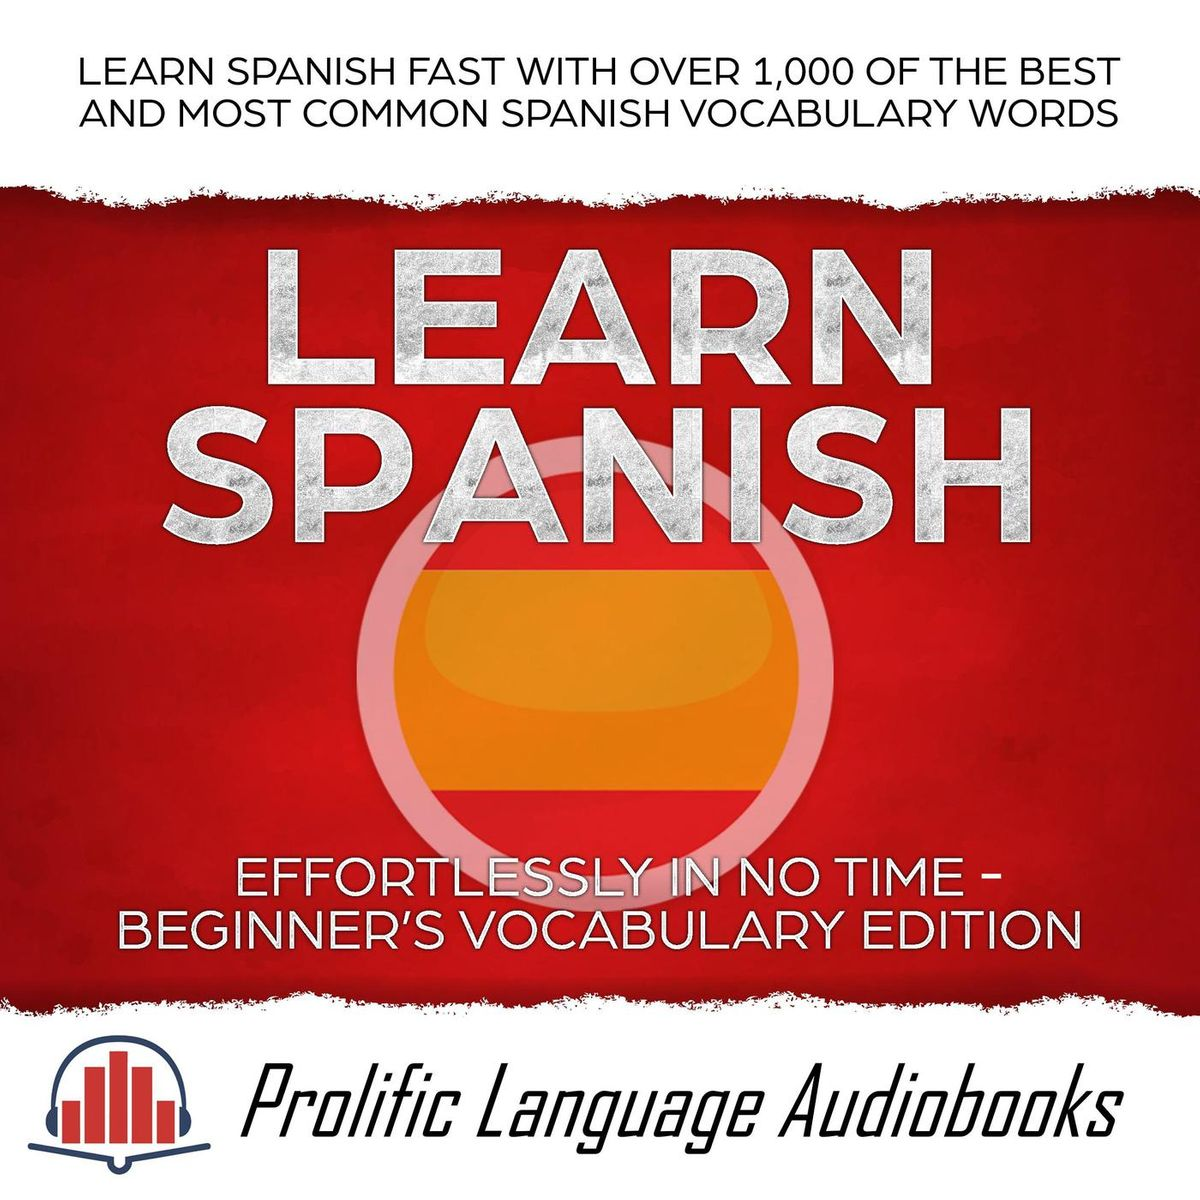 Learn Spanish Effortlessly in No Time – Beginner's Vocabulary Edition: Learn Spanish FAST with Over 1,000 of the Best and Most Common Spanish Vocabulary Words - eBook